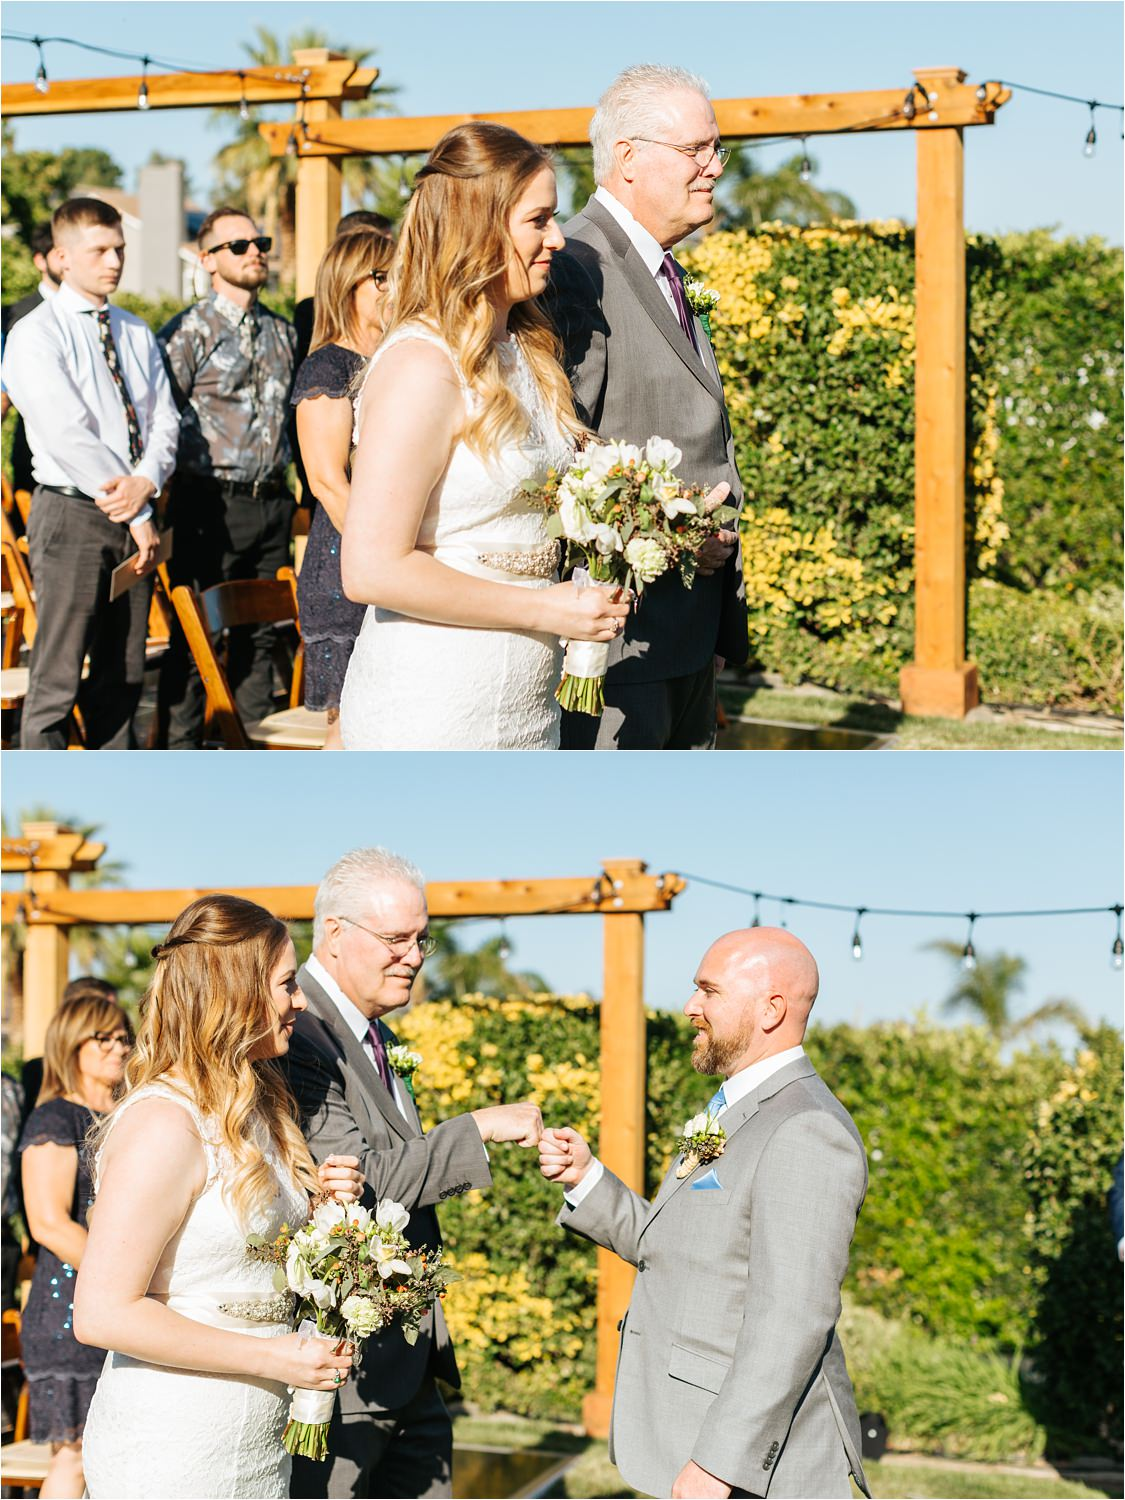 Dad gives daughter away with a fist bump to the groom - https://brittneyhannonphotography.com